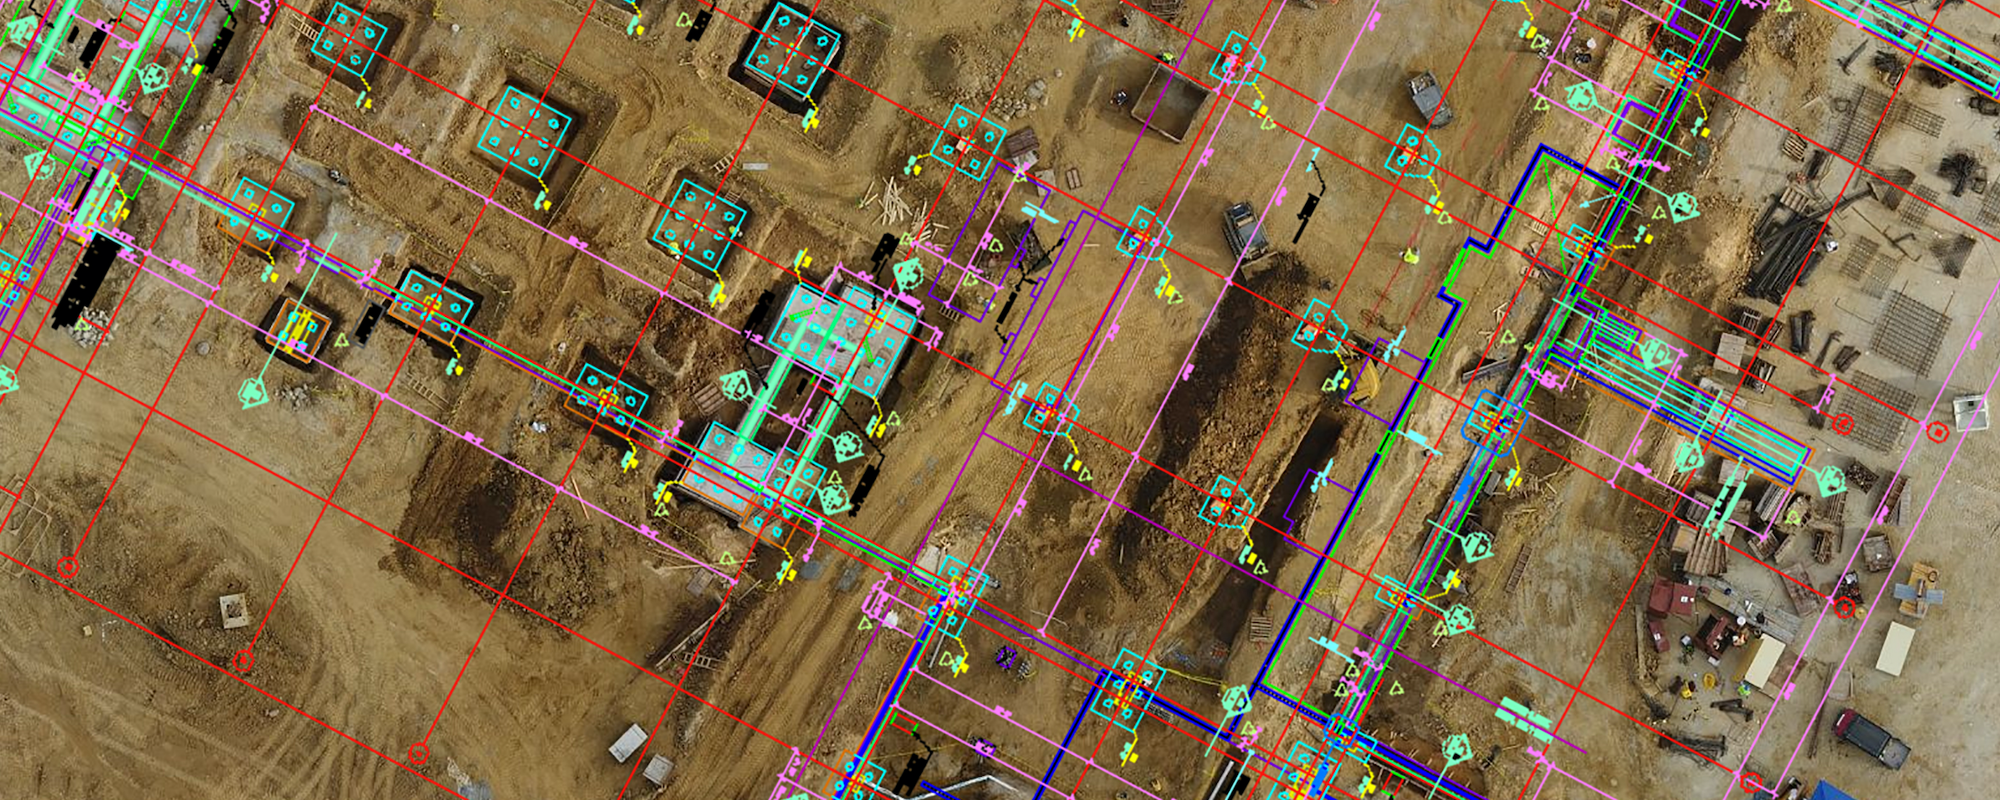 Compare Design Plans And Drone Maps With New Overlay Tool - Drone mapping software free